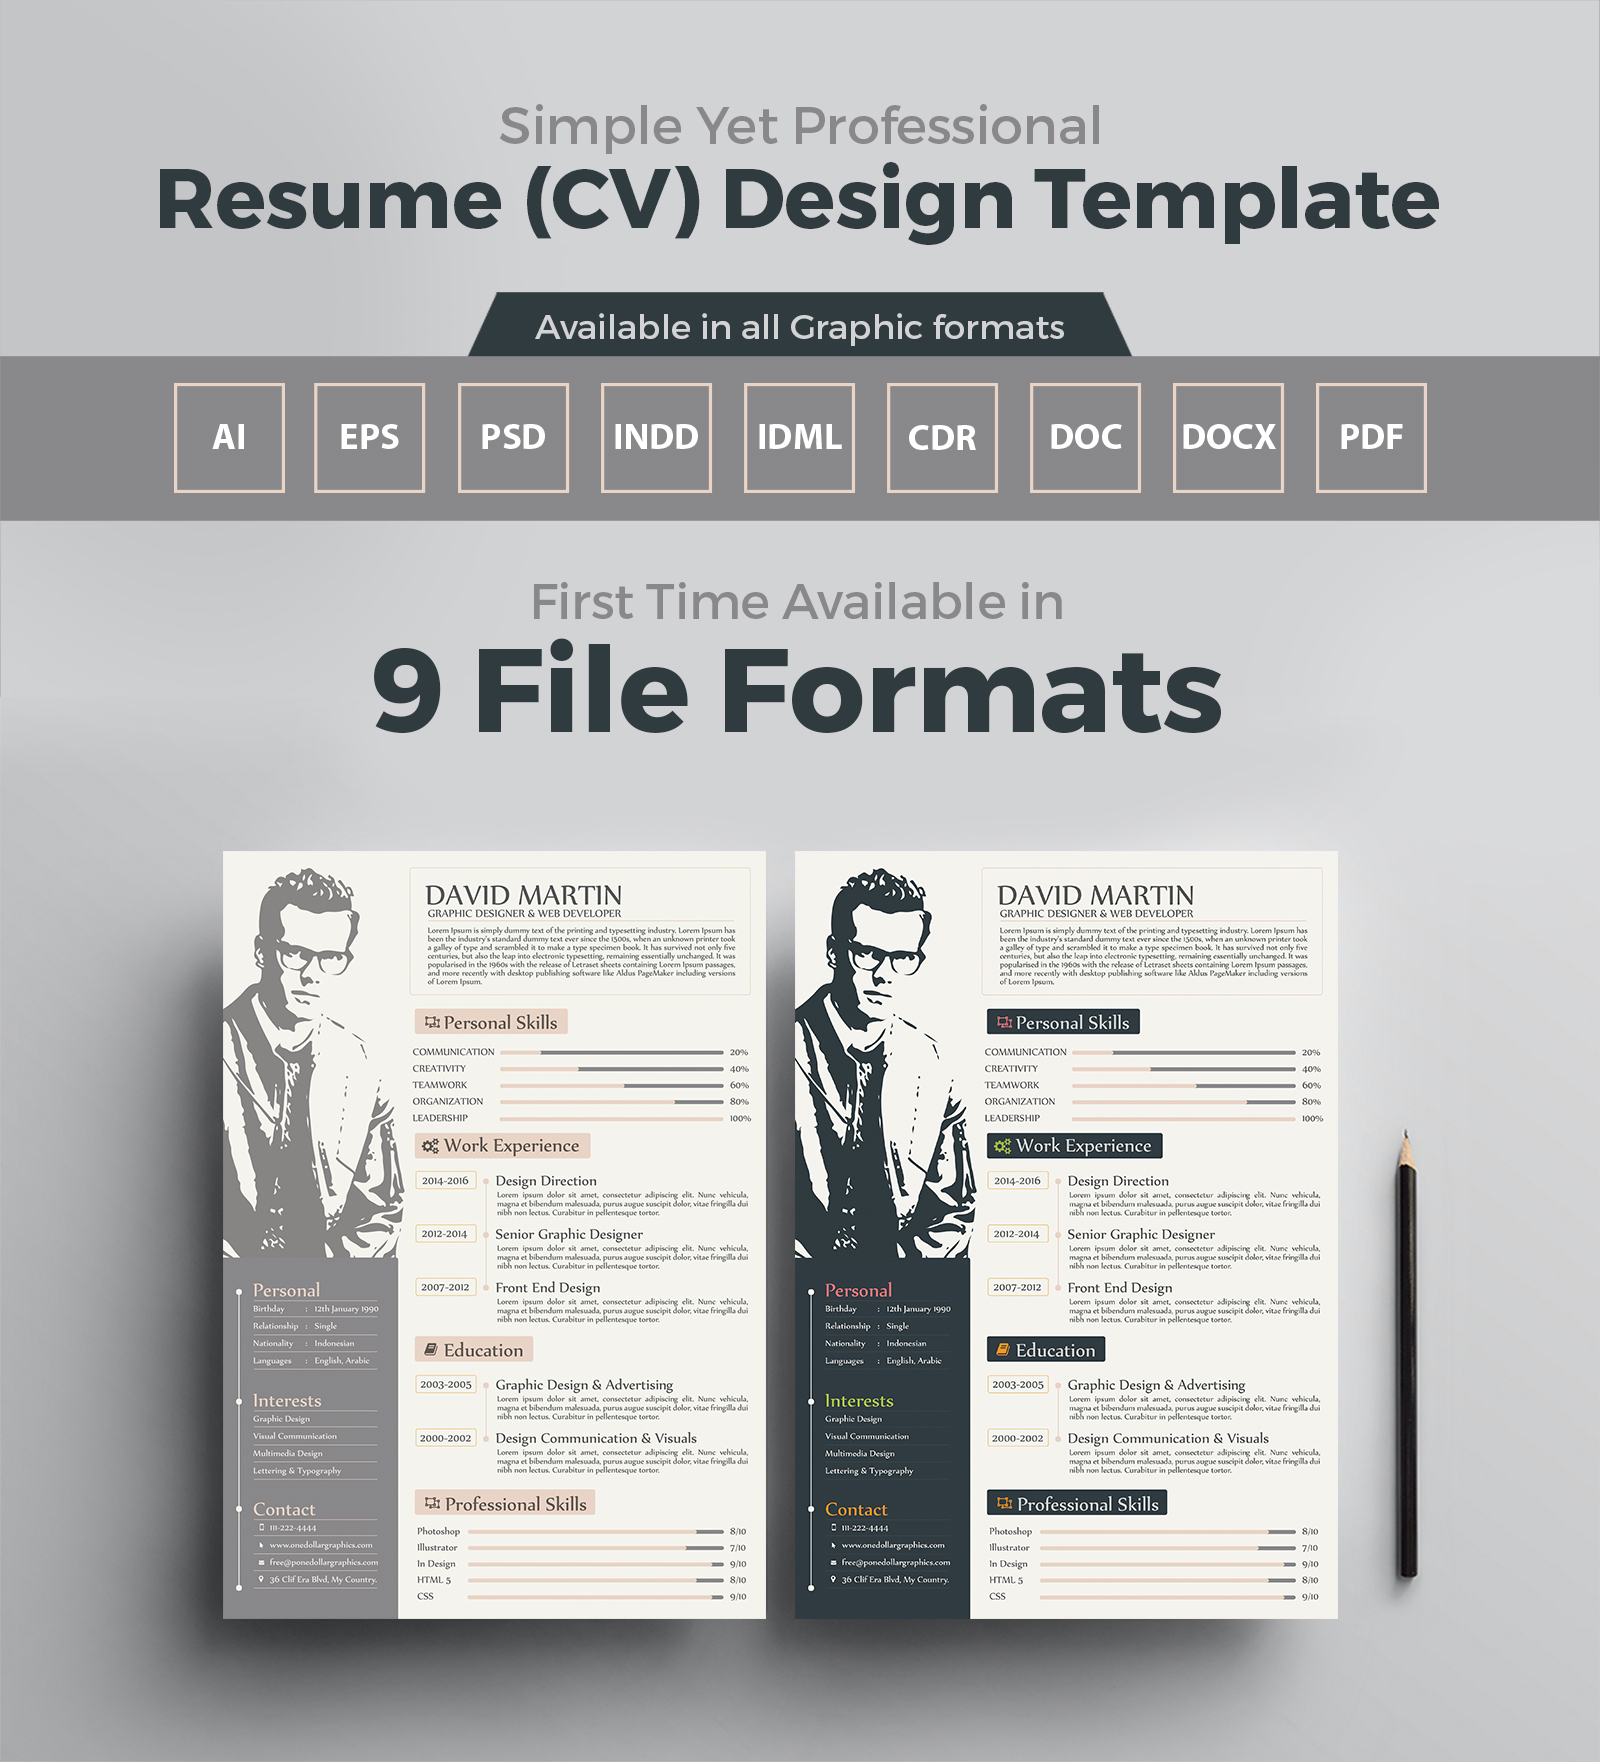 Simple Yet Professional Resume CV Design Templates In Ai